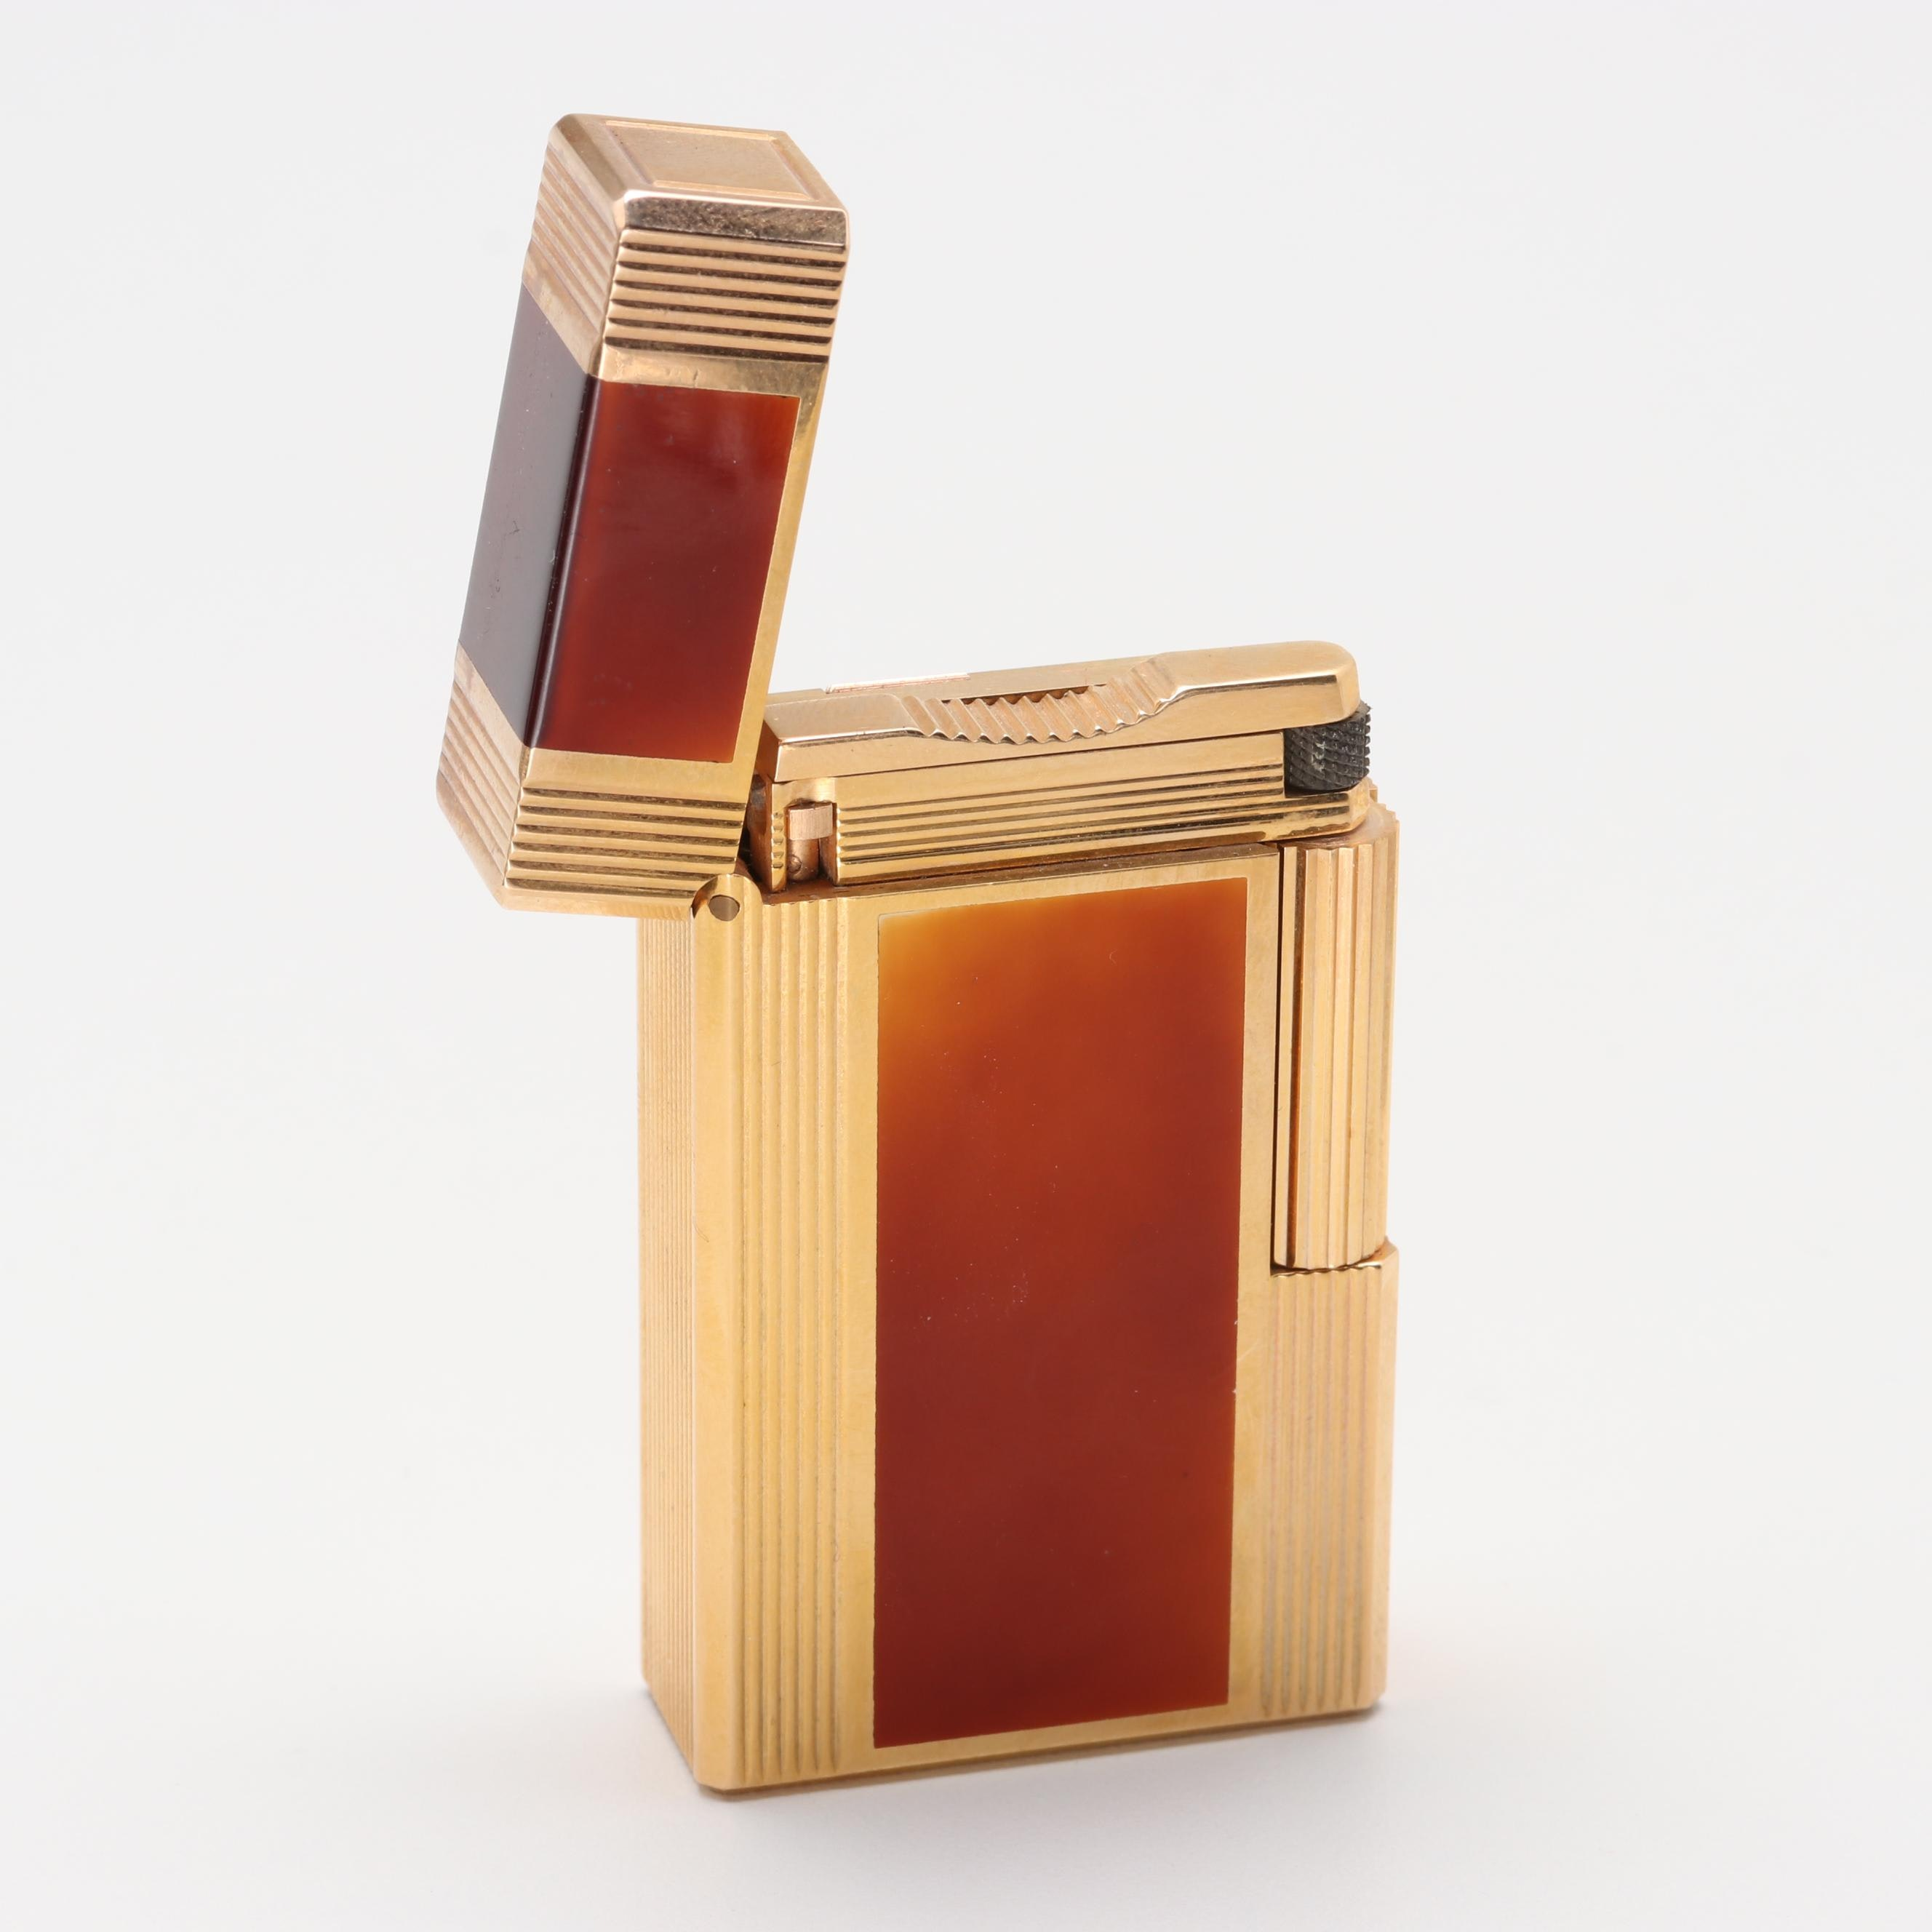 S. T. Dupont Gold Tone Laque de Chine Enamel Lighter with Box and Paperwork